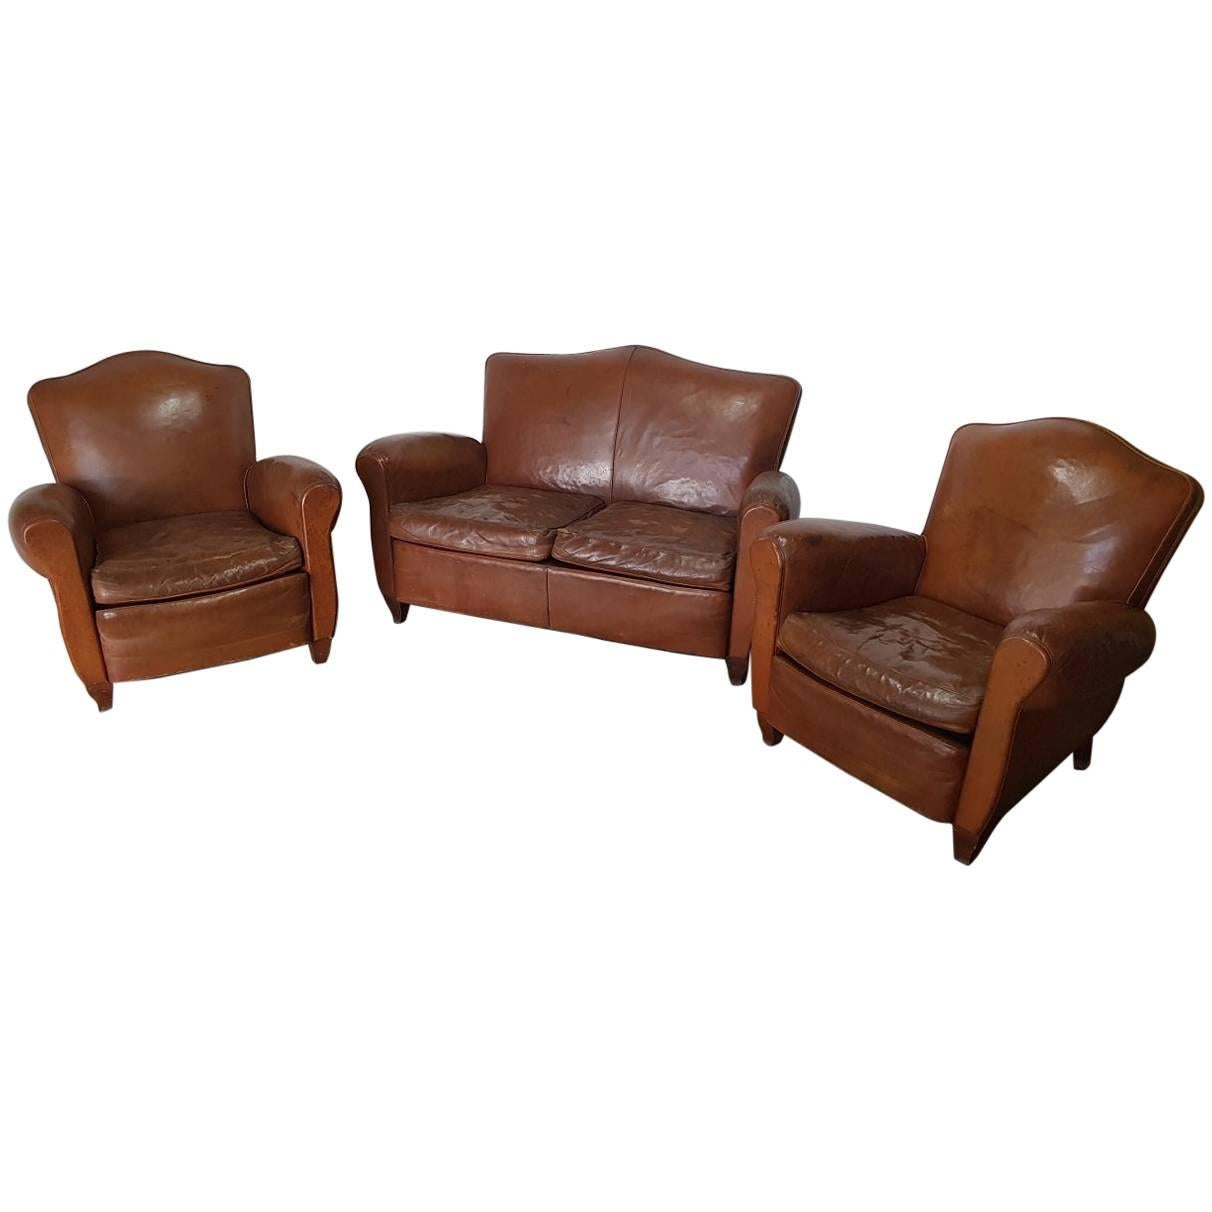 Vintage French Leather Club Chairs With Matching Sofa From The 1950s For  Sale